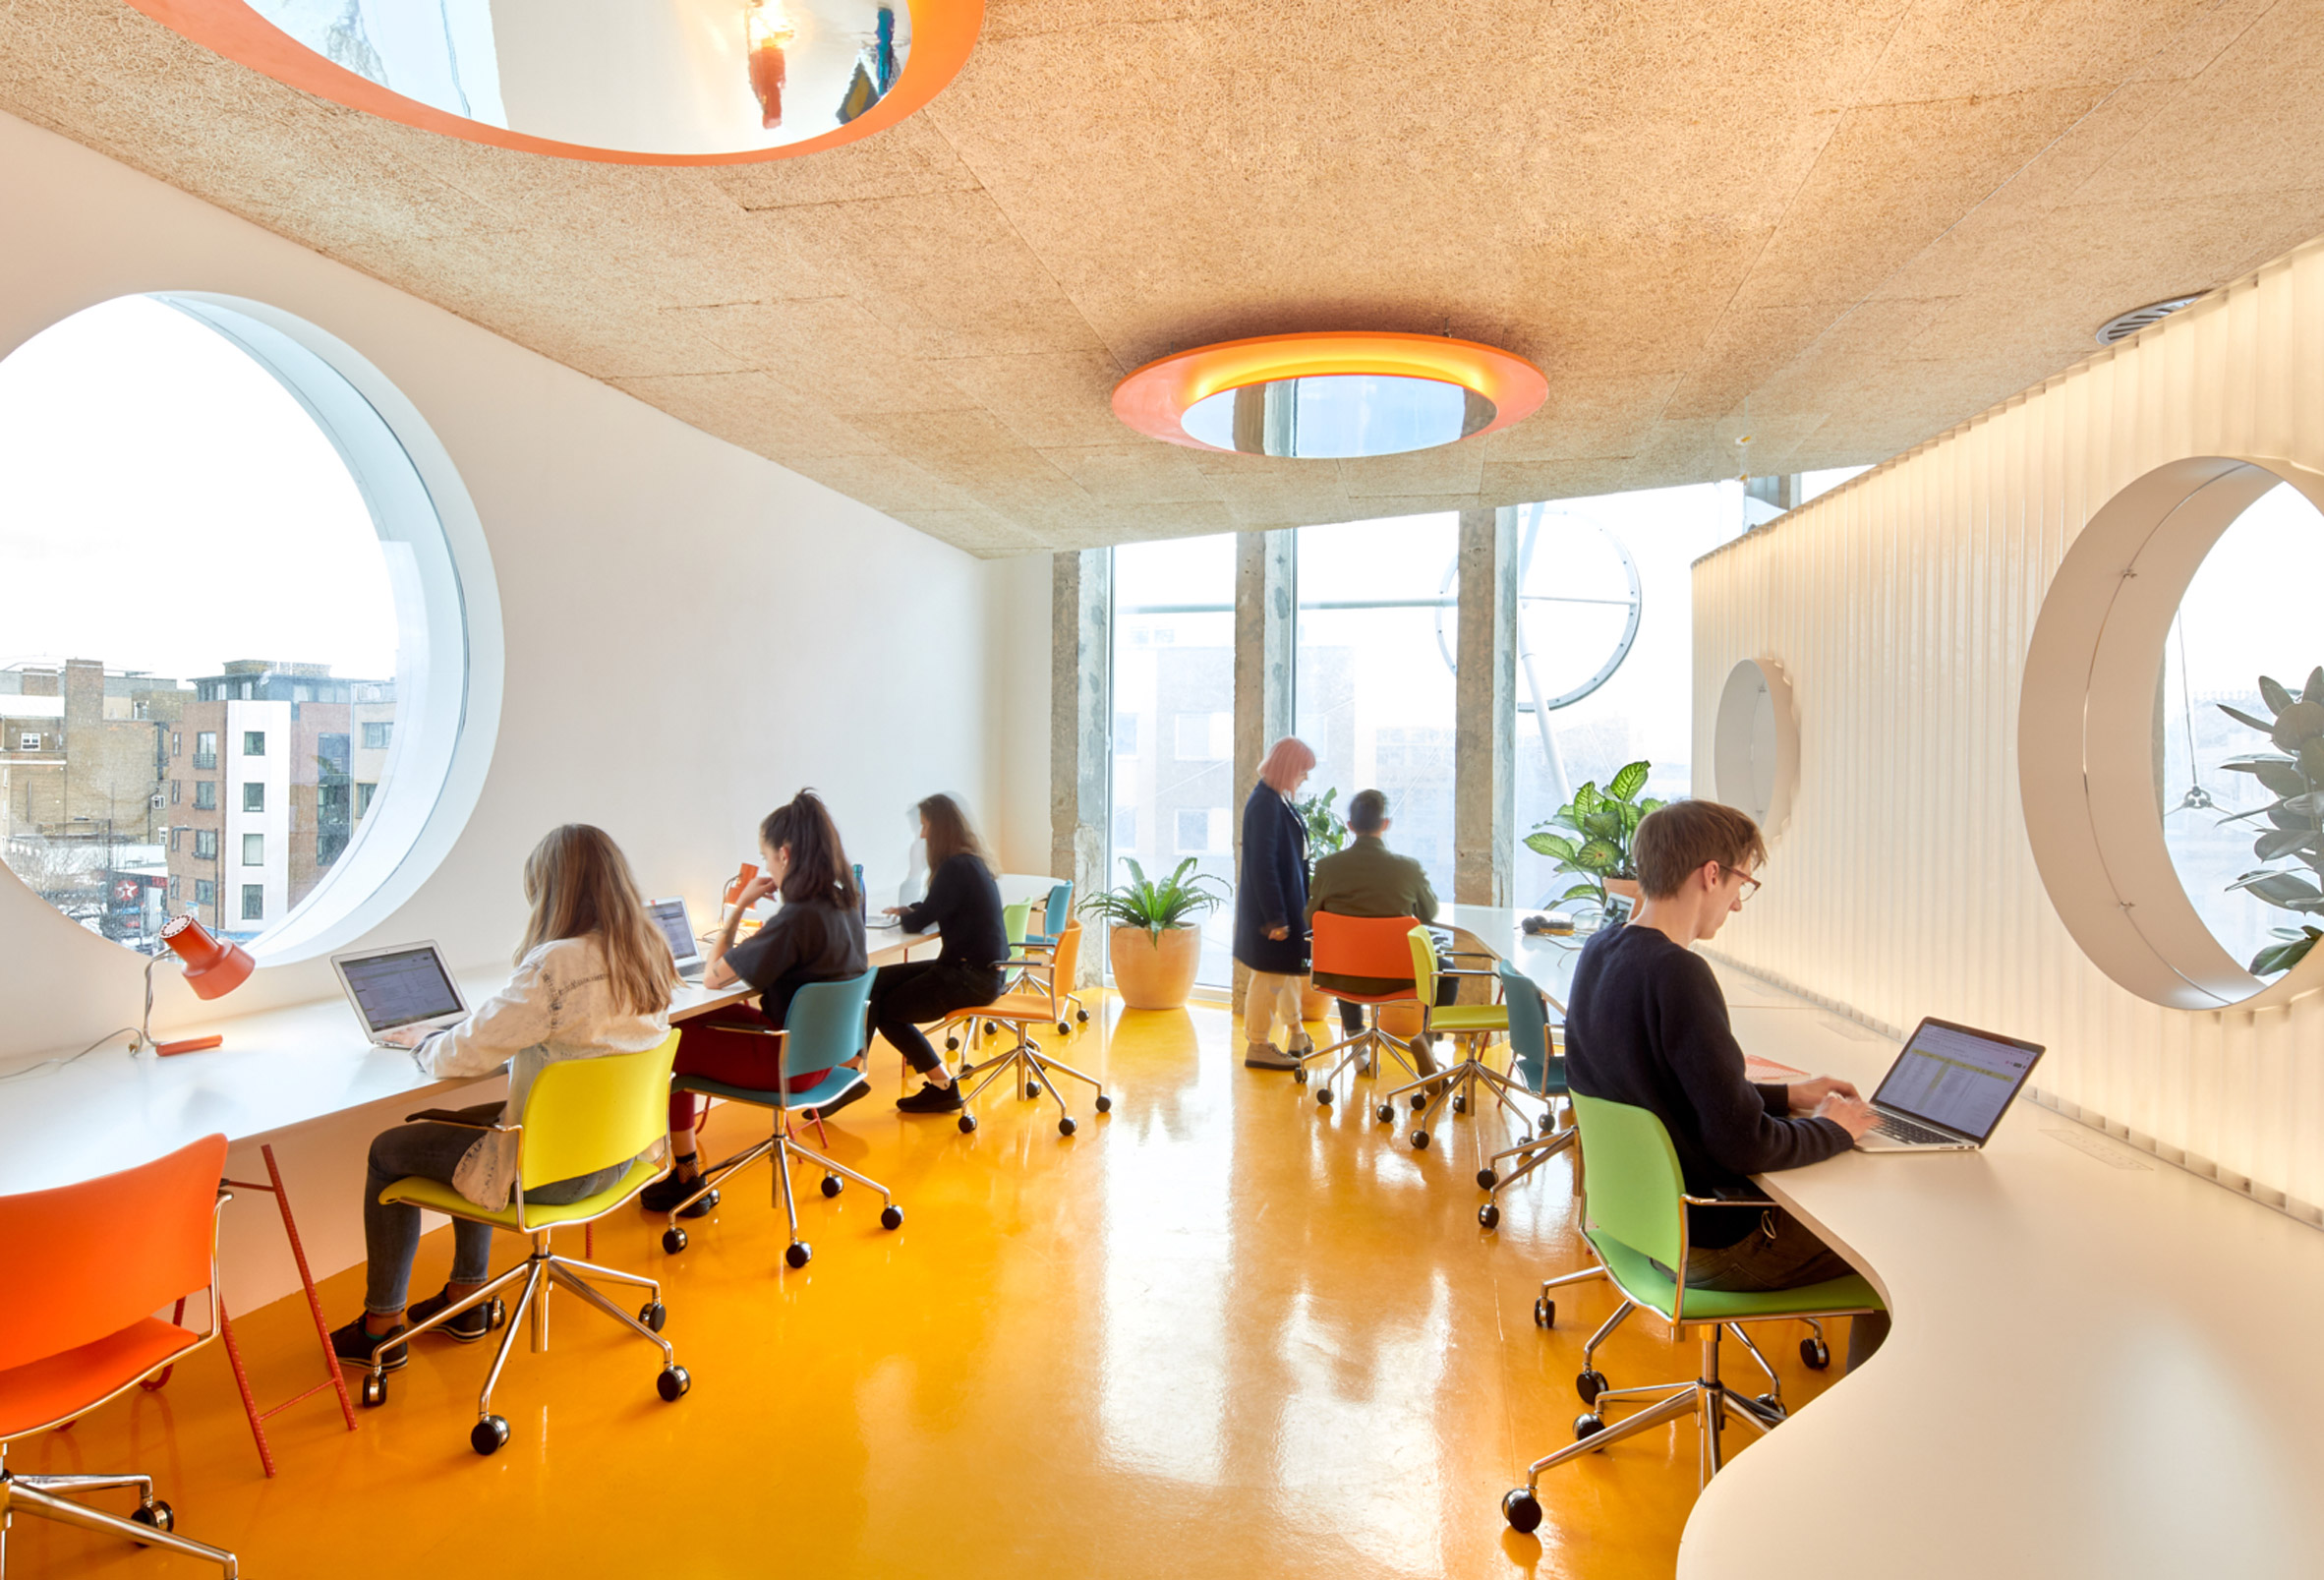 second-home-london-fields-cano-lasso-interiors-co-working-offices-extra_dezeen_2364_col_10.jpg